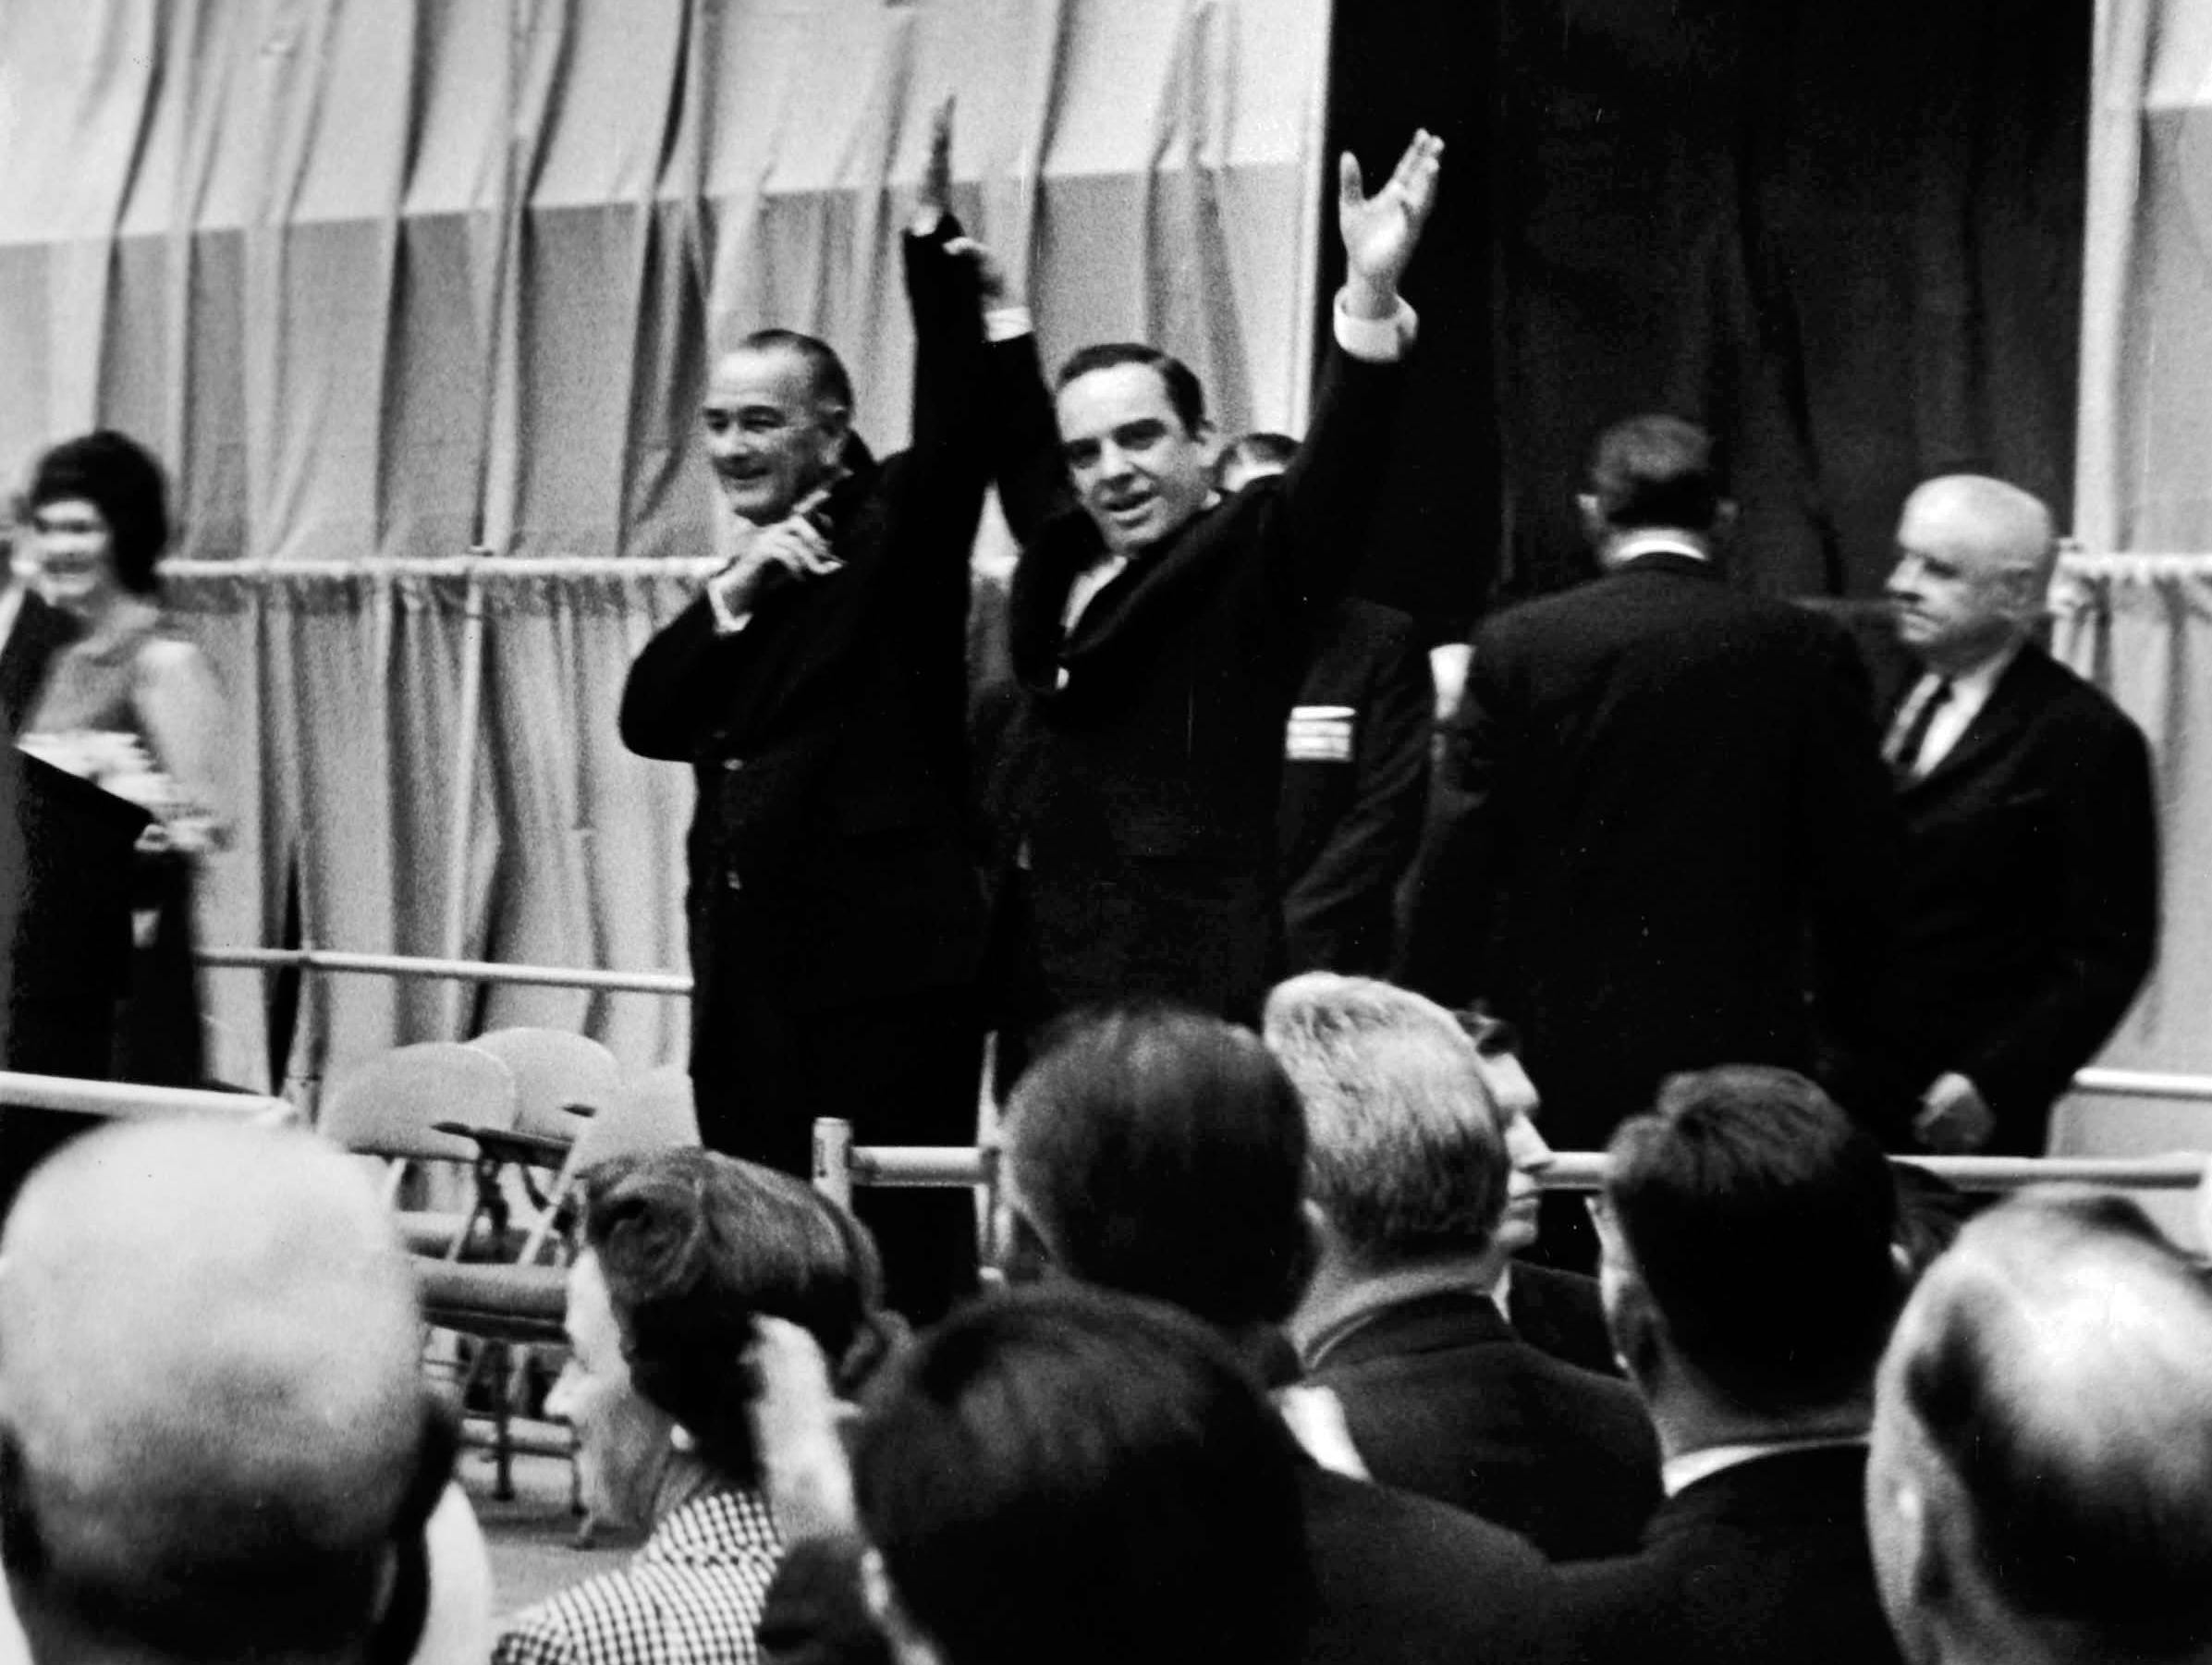 In a May 7, 1964 photograph, President Lyndon B. Johnson and Gov. Frank Clement acknowledge the crowd of 7,000 people who filled the Civic Coliseum for a rally.